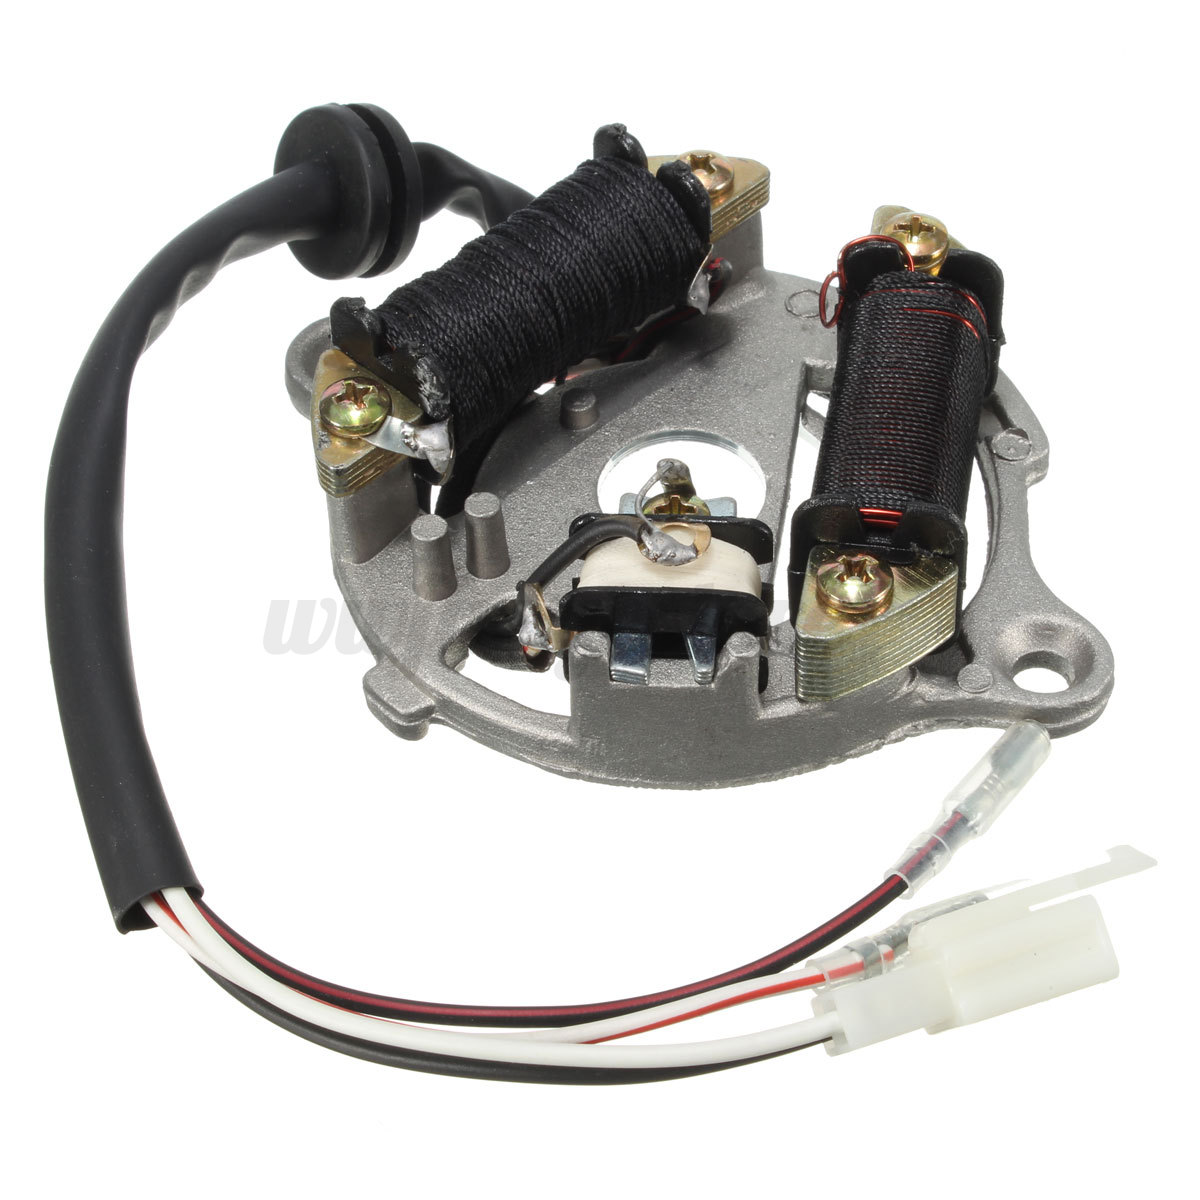 motorcycle stator wiring diagram 2003 lincoln navigator engine bike ignition magneto coil assembly for